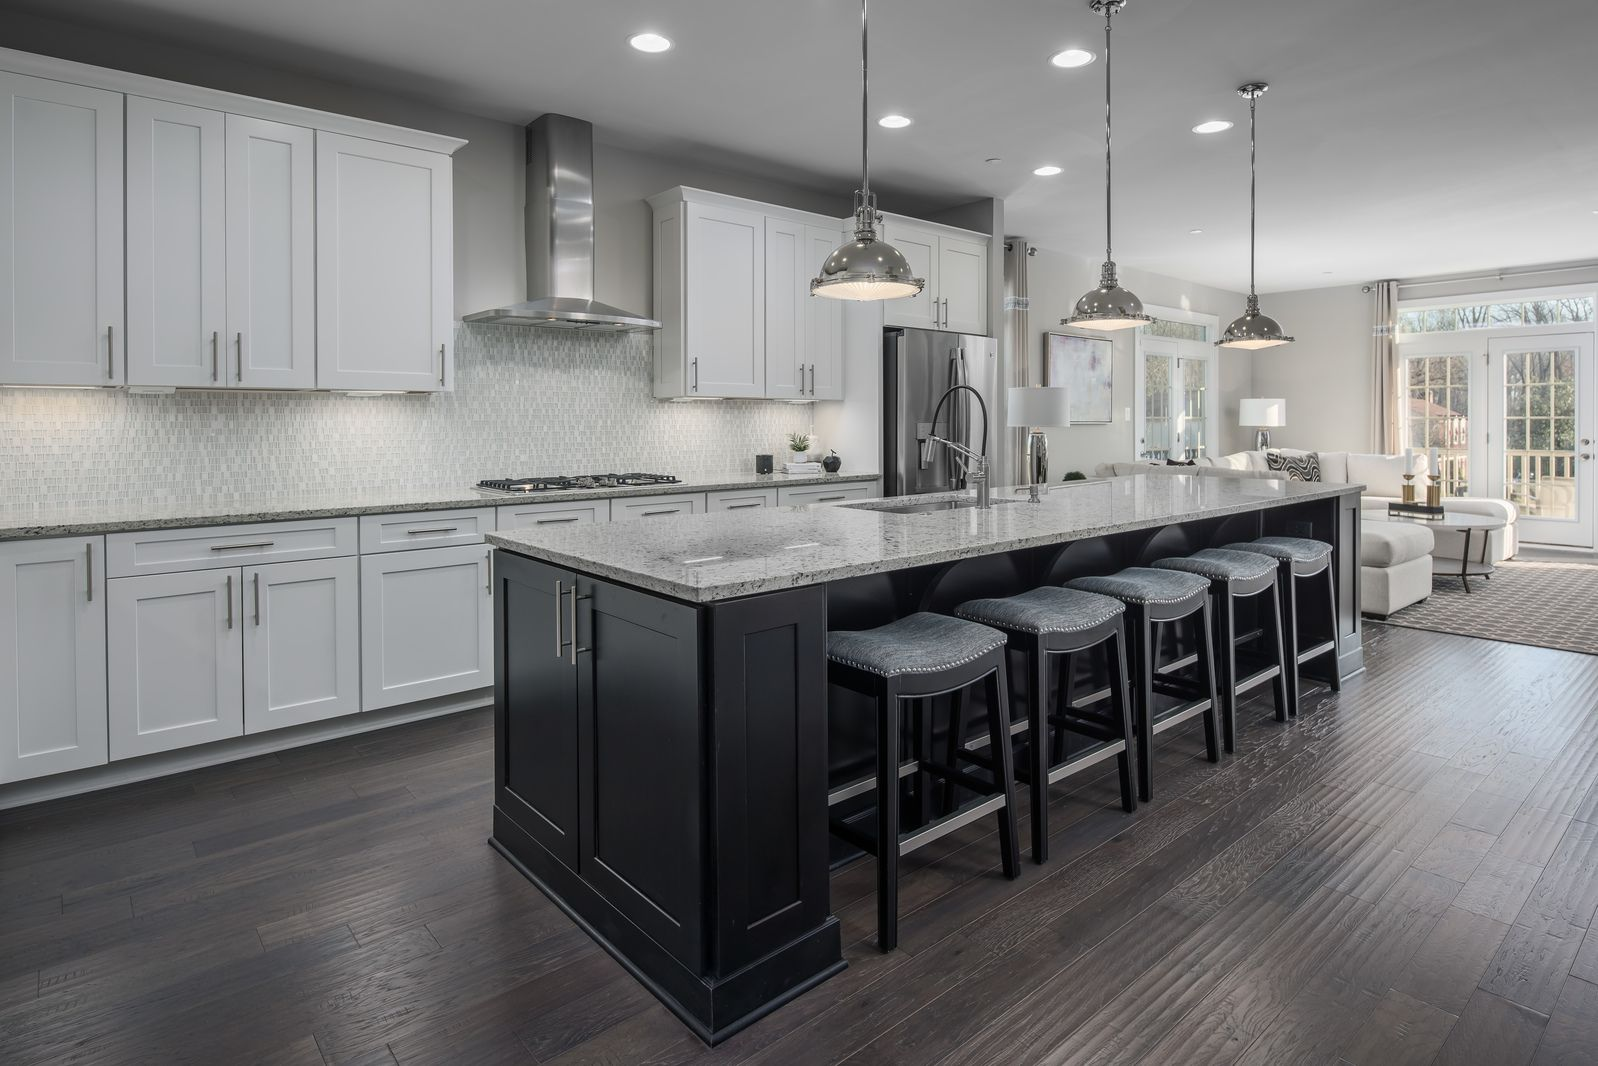 Kitchen featured in the Andrew Carnegie By NVHomes in Baltimore, MD